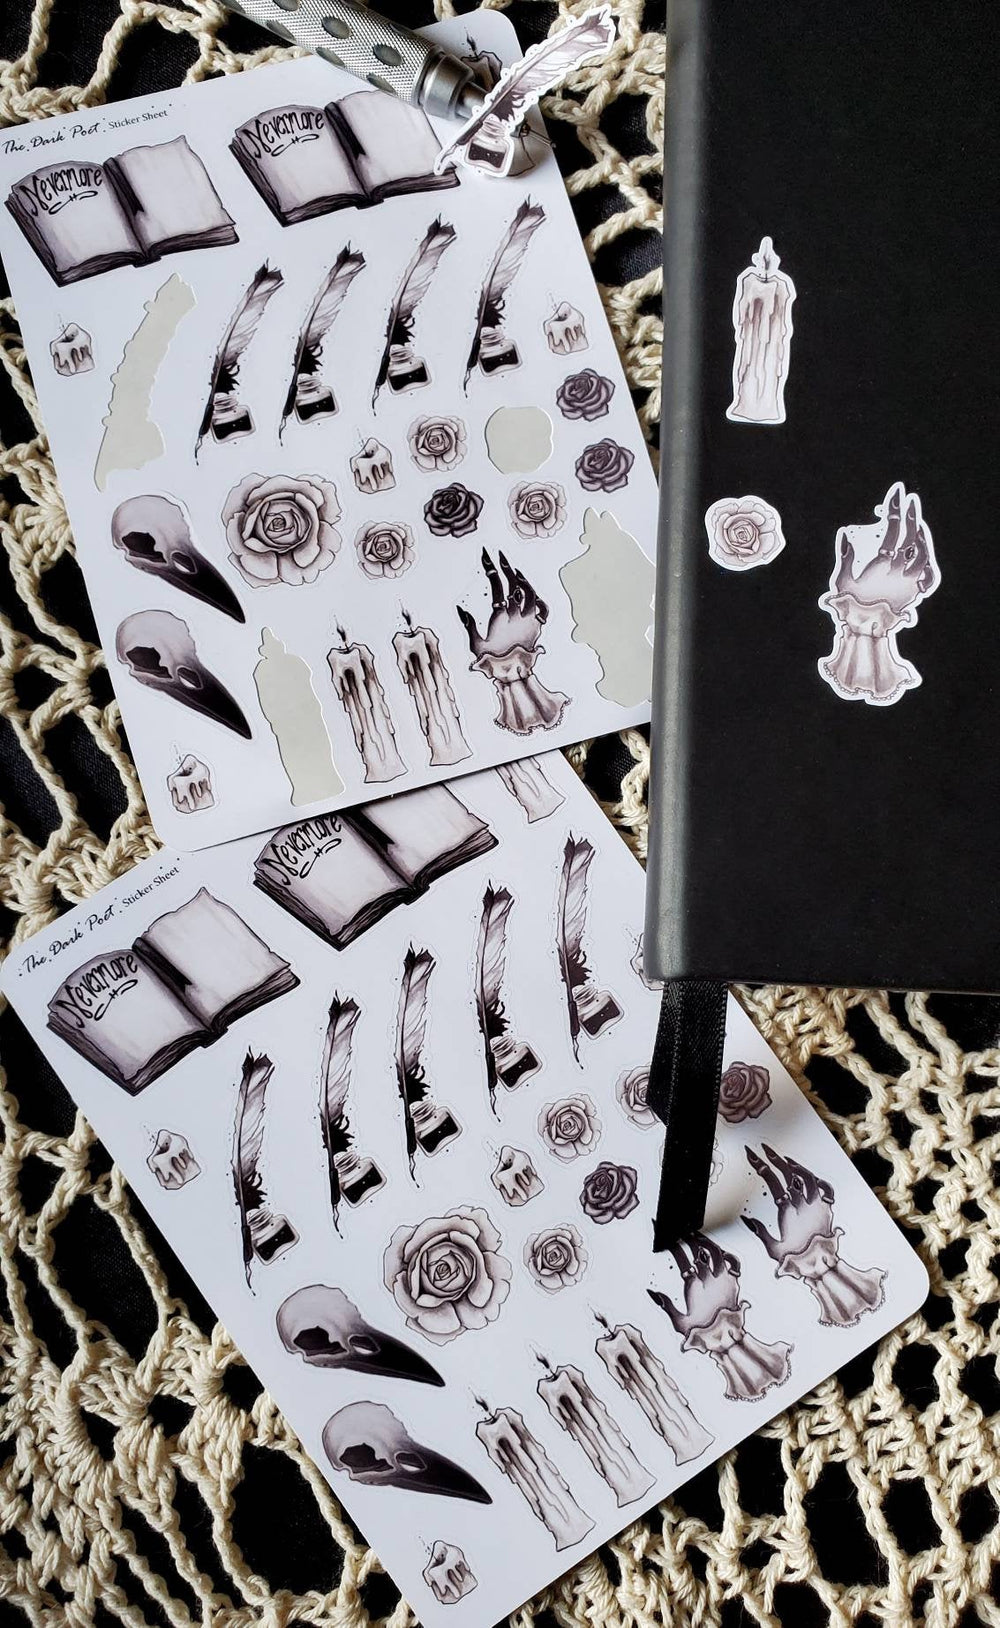 Dark Poet gothic STICKER sheet -Lowbrow misfits White Stag Art